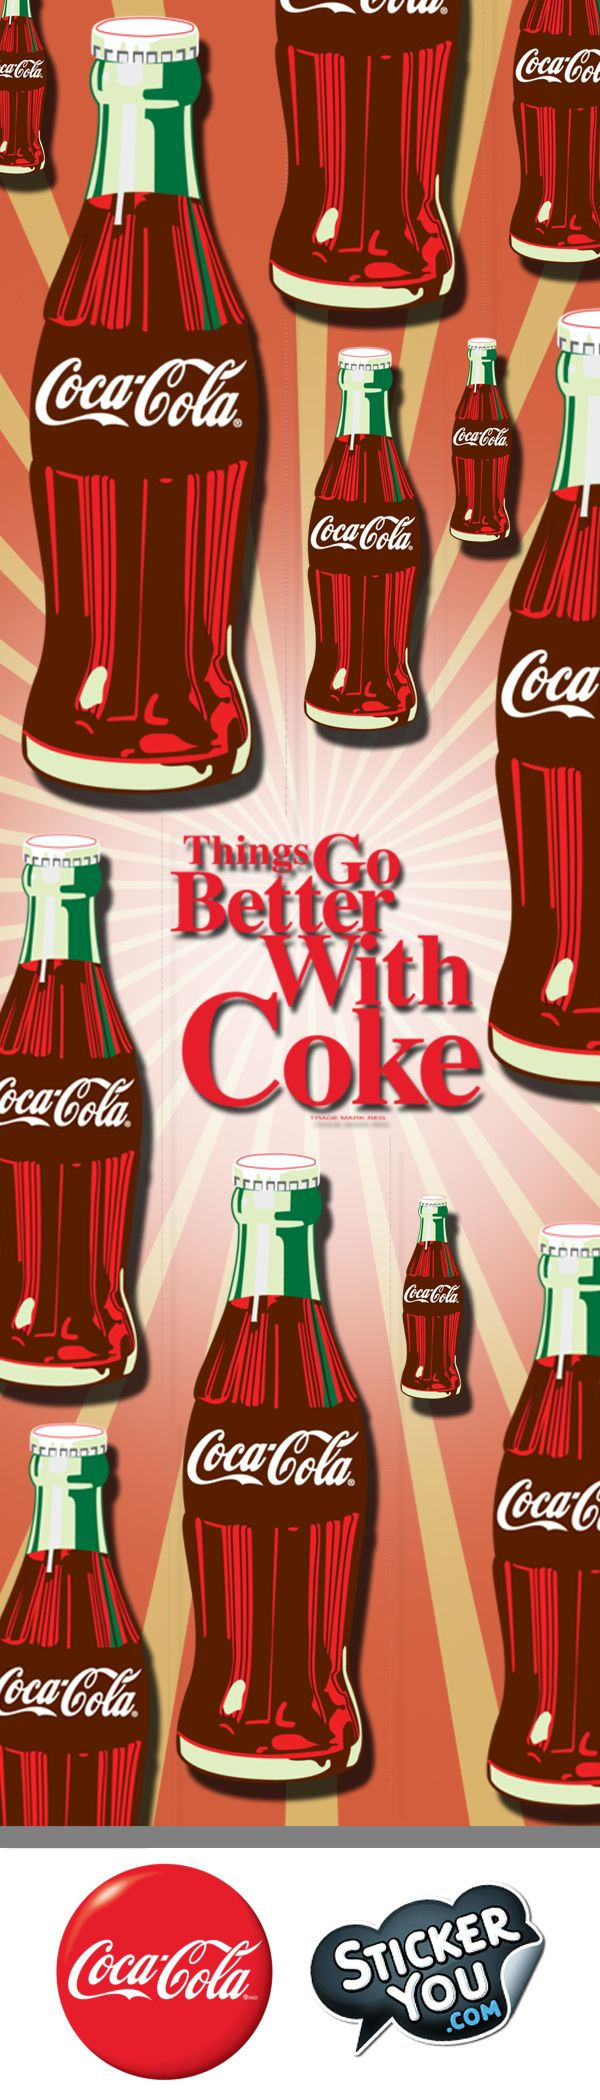 For the first time ever, you can create and customize your very own Coca-Cola stickers. With a rich history of beautiful artwork, you're sure to find exactly what you need for the perfect Coke sticker. Make it Stick with Coca-Cola and StickerYou!